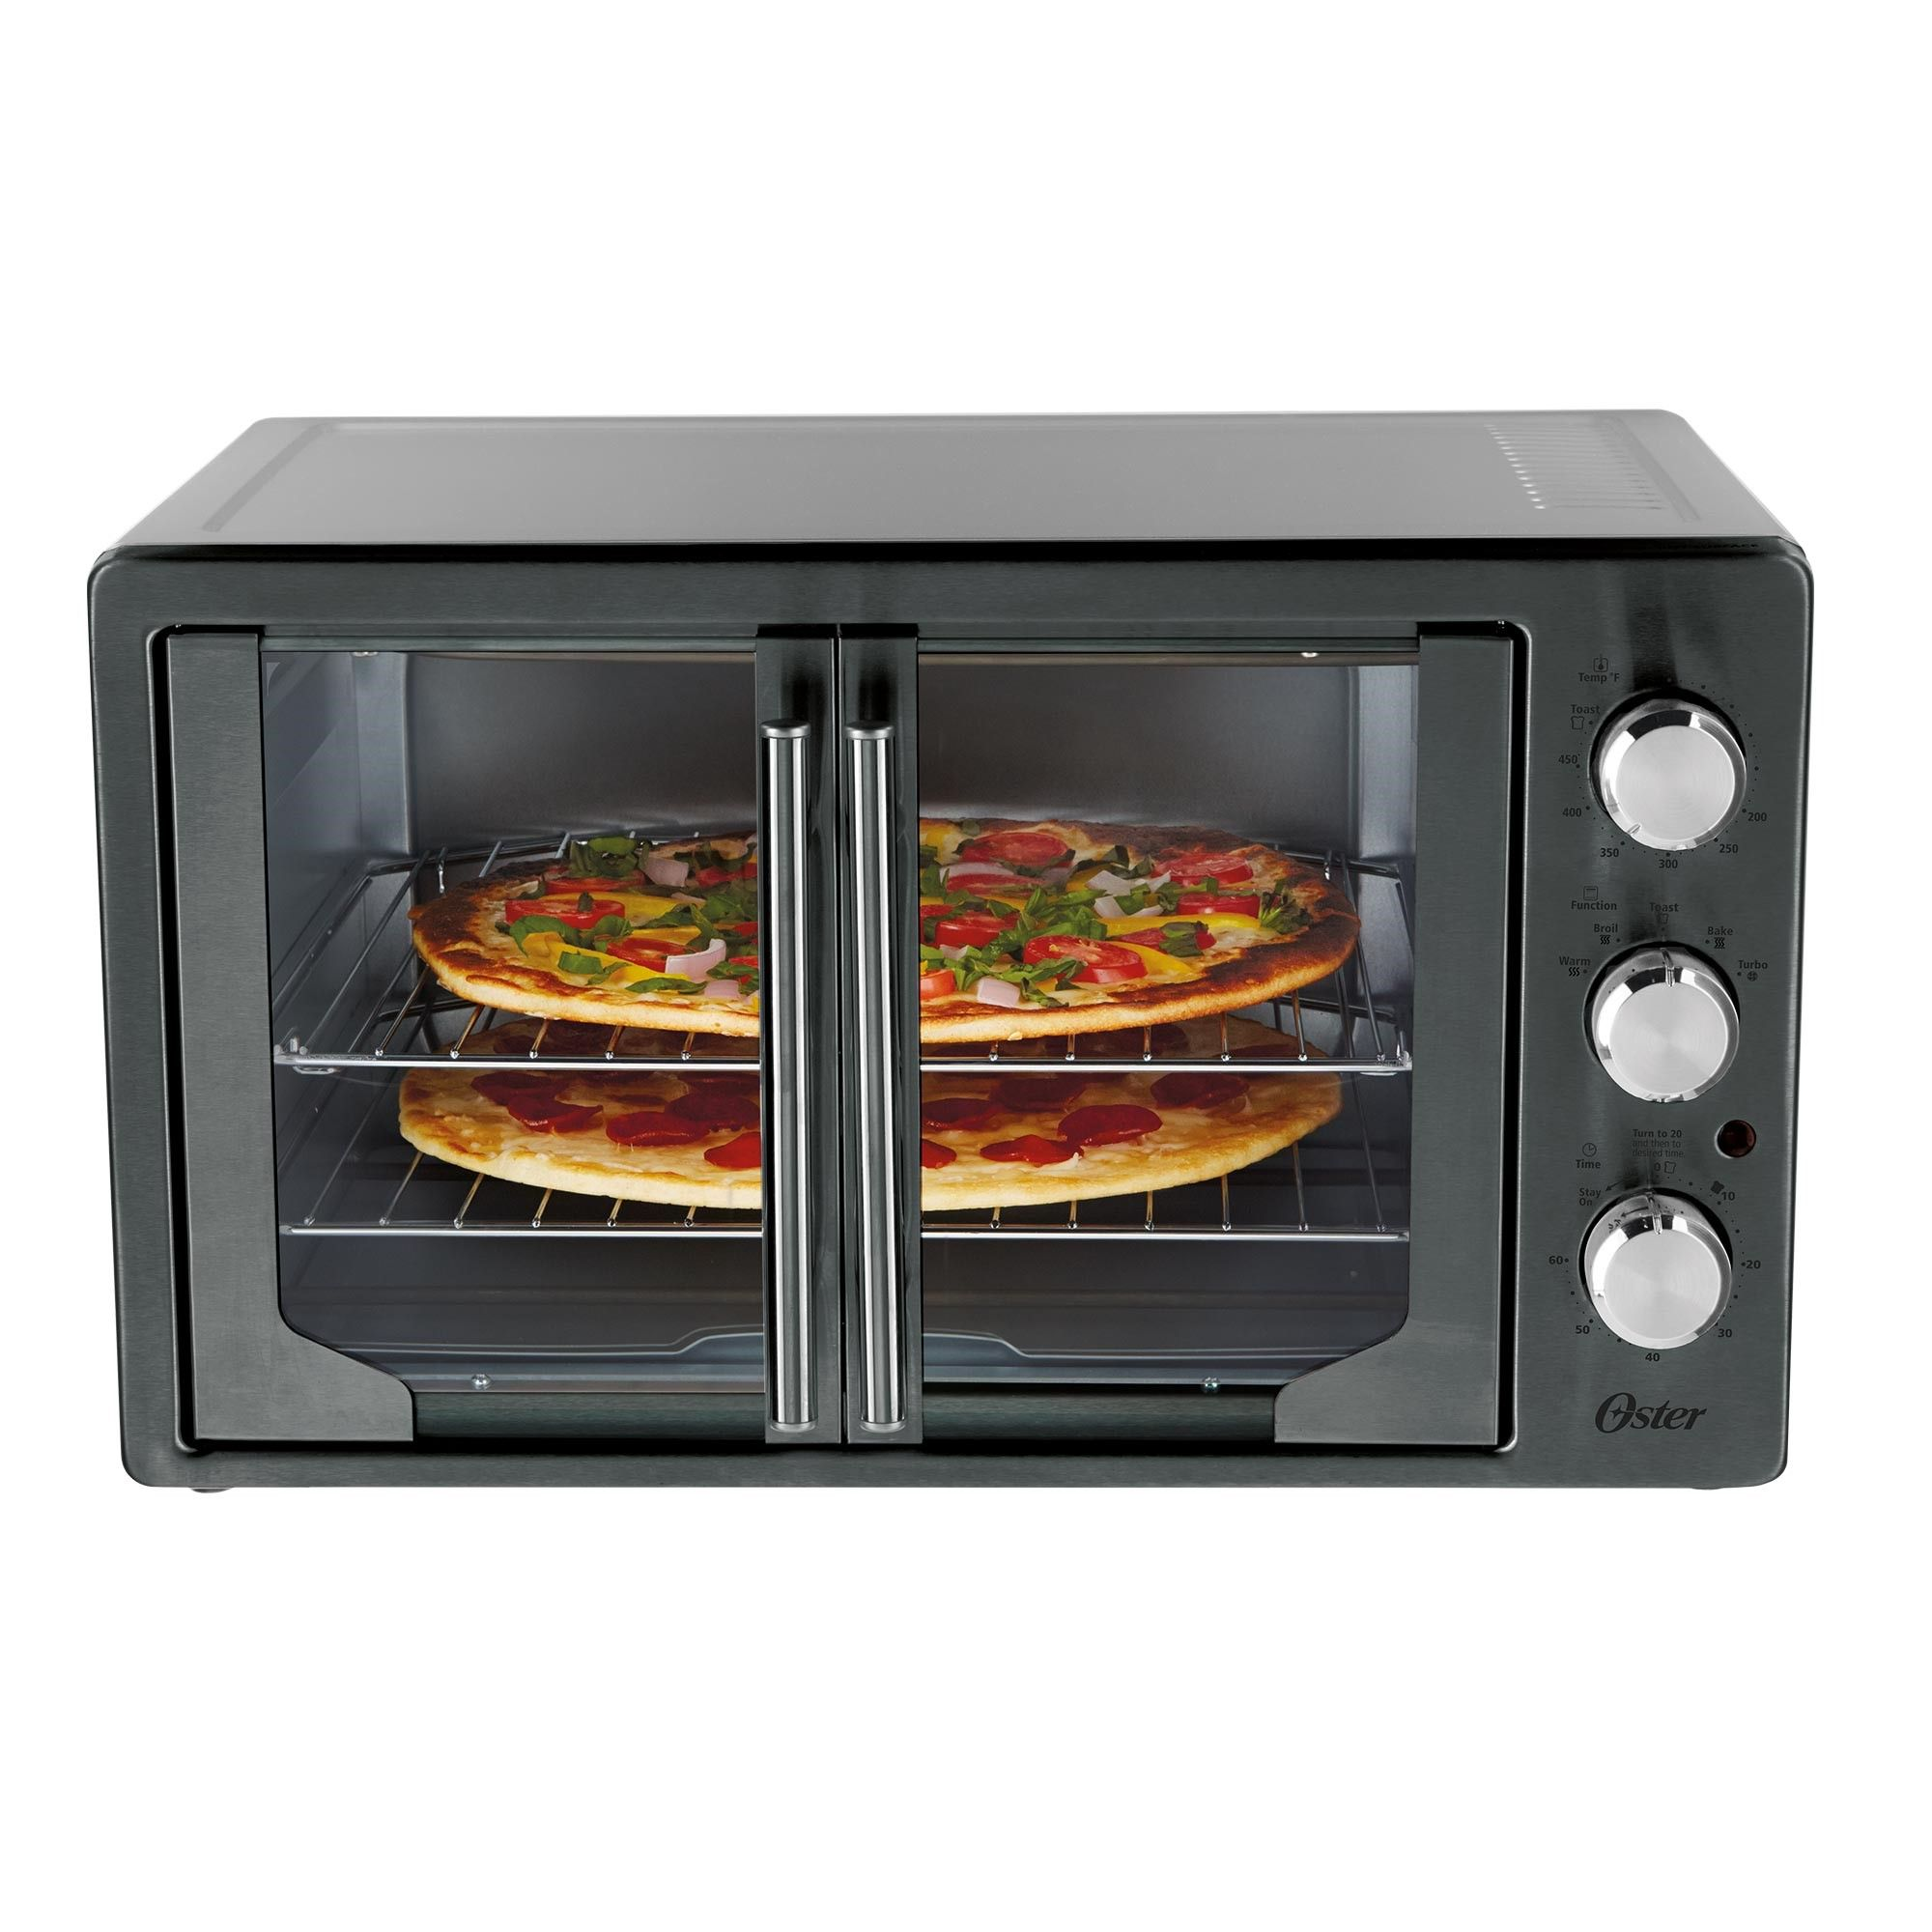 Oster French Door Convection Toaster Oven Metallic Charcoal Walmart Com In 2020 French Door Oven Countertop Oven Stainless Steel Oven